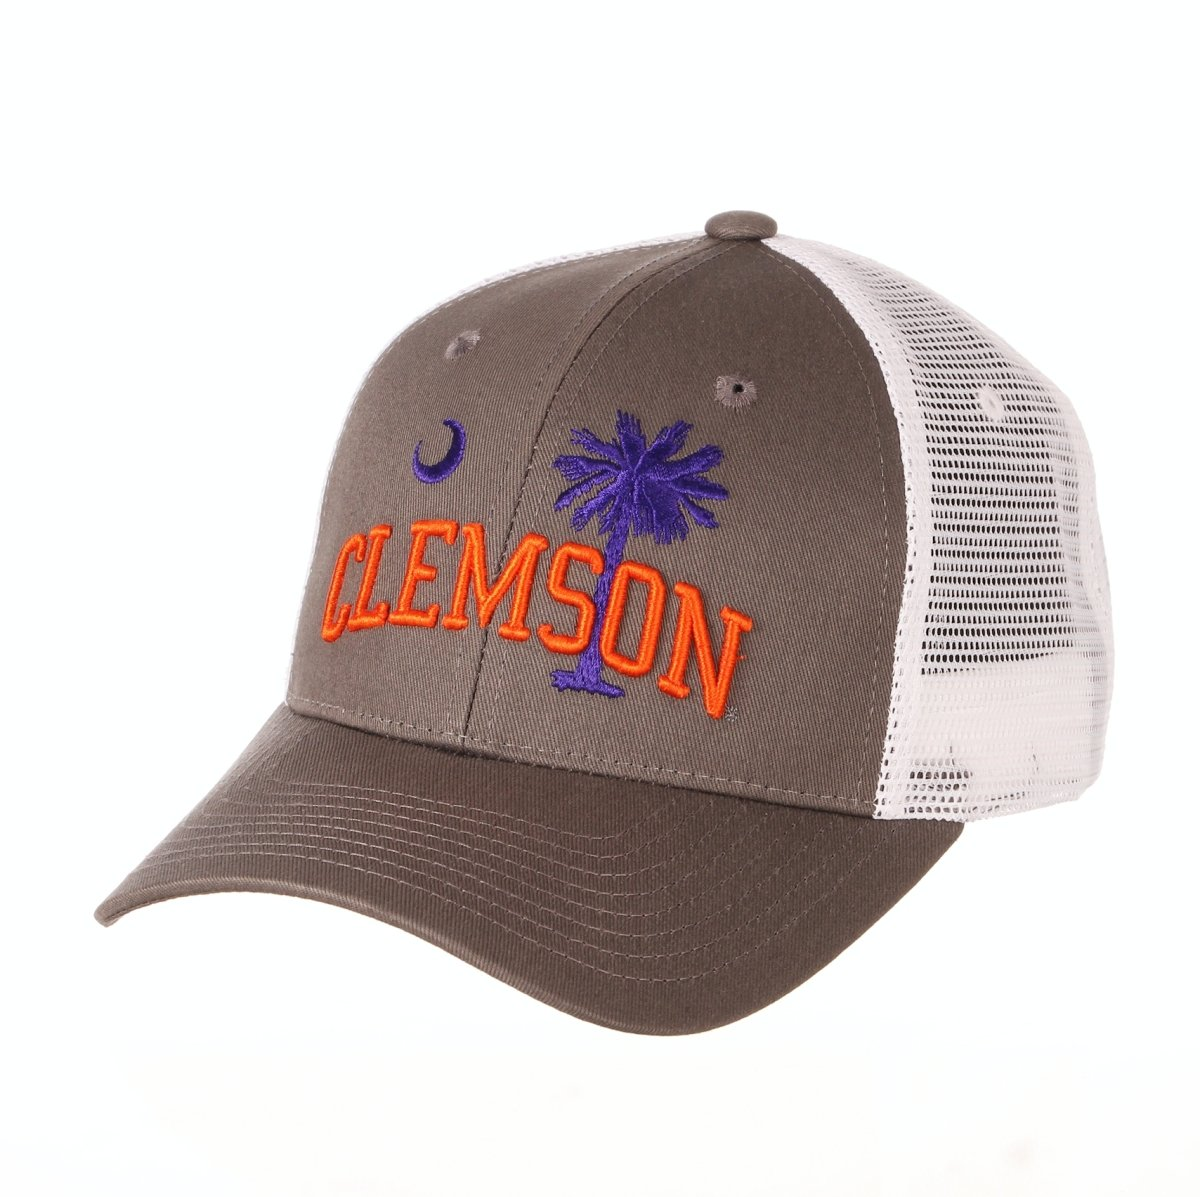 Clemson Tigers Big Rig Palmetto State Trucker Hat - Gray - Mr. Knickerbocker